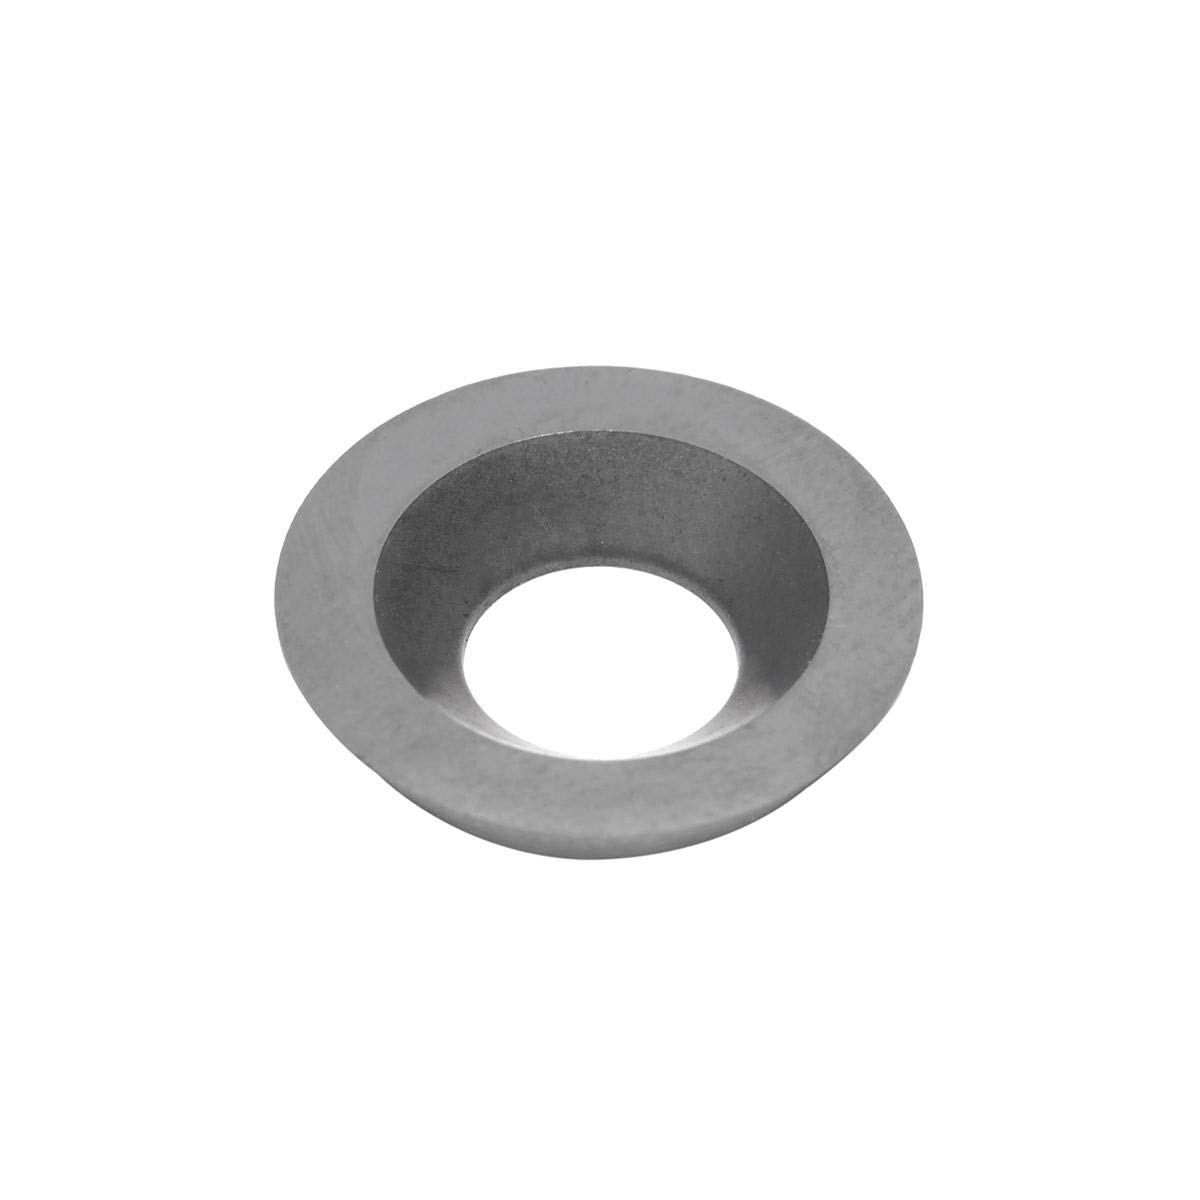 10Pcs 15mm Round Radius Carbide Insert Replace Cutter Insert For Wood Turning Tools - Cutting Tool Carbide Insert - 1X Carbide Insert (10Pcs/Set)